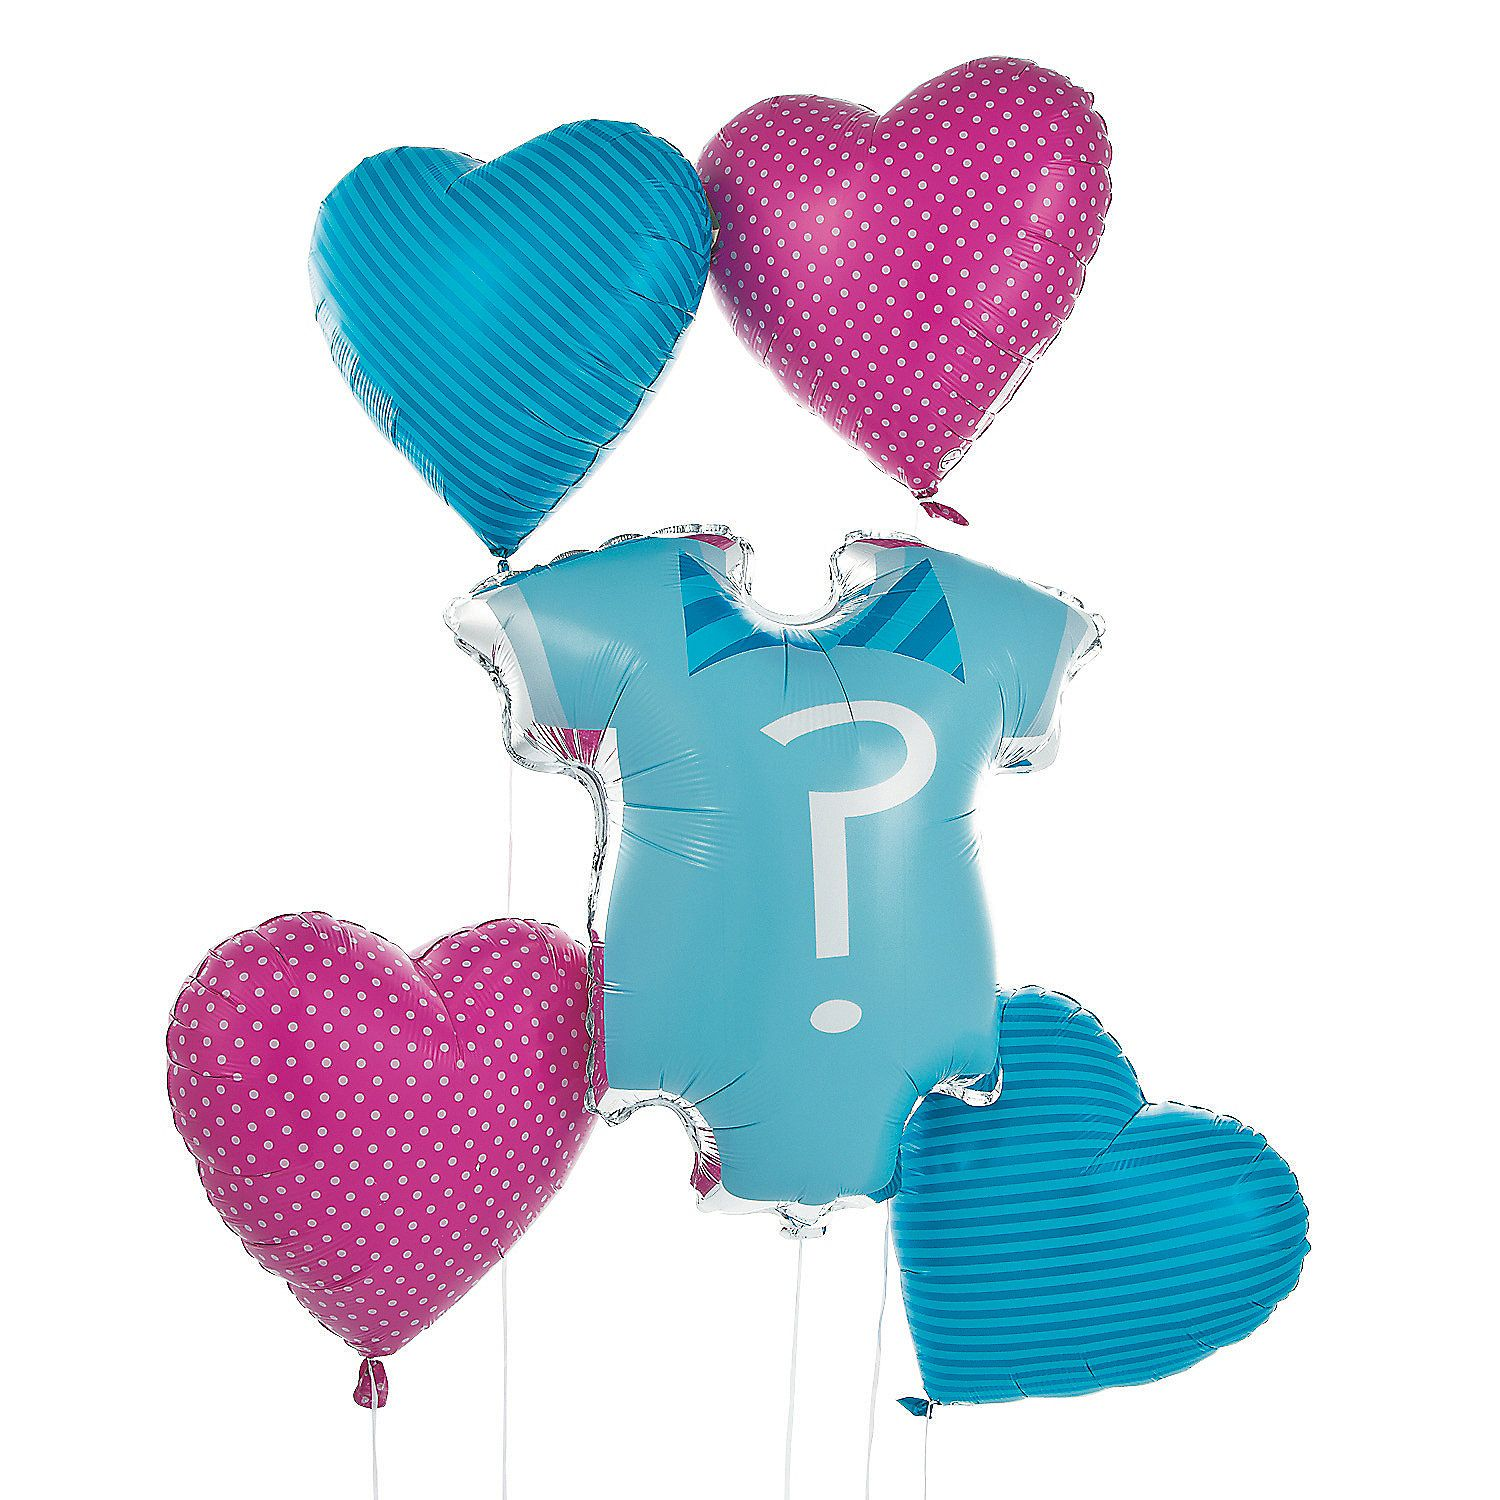 A must for your baby gender reveal party